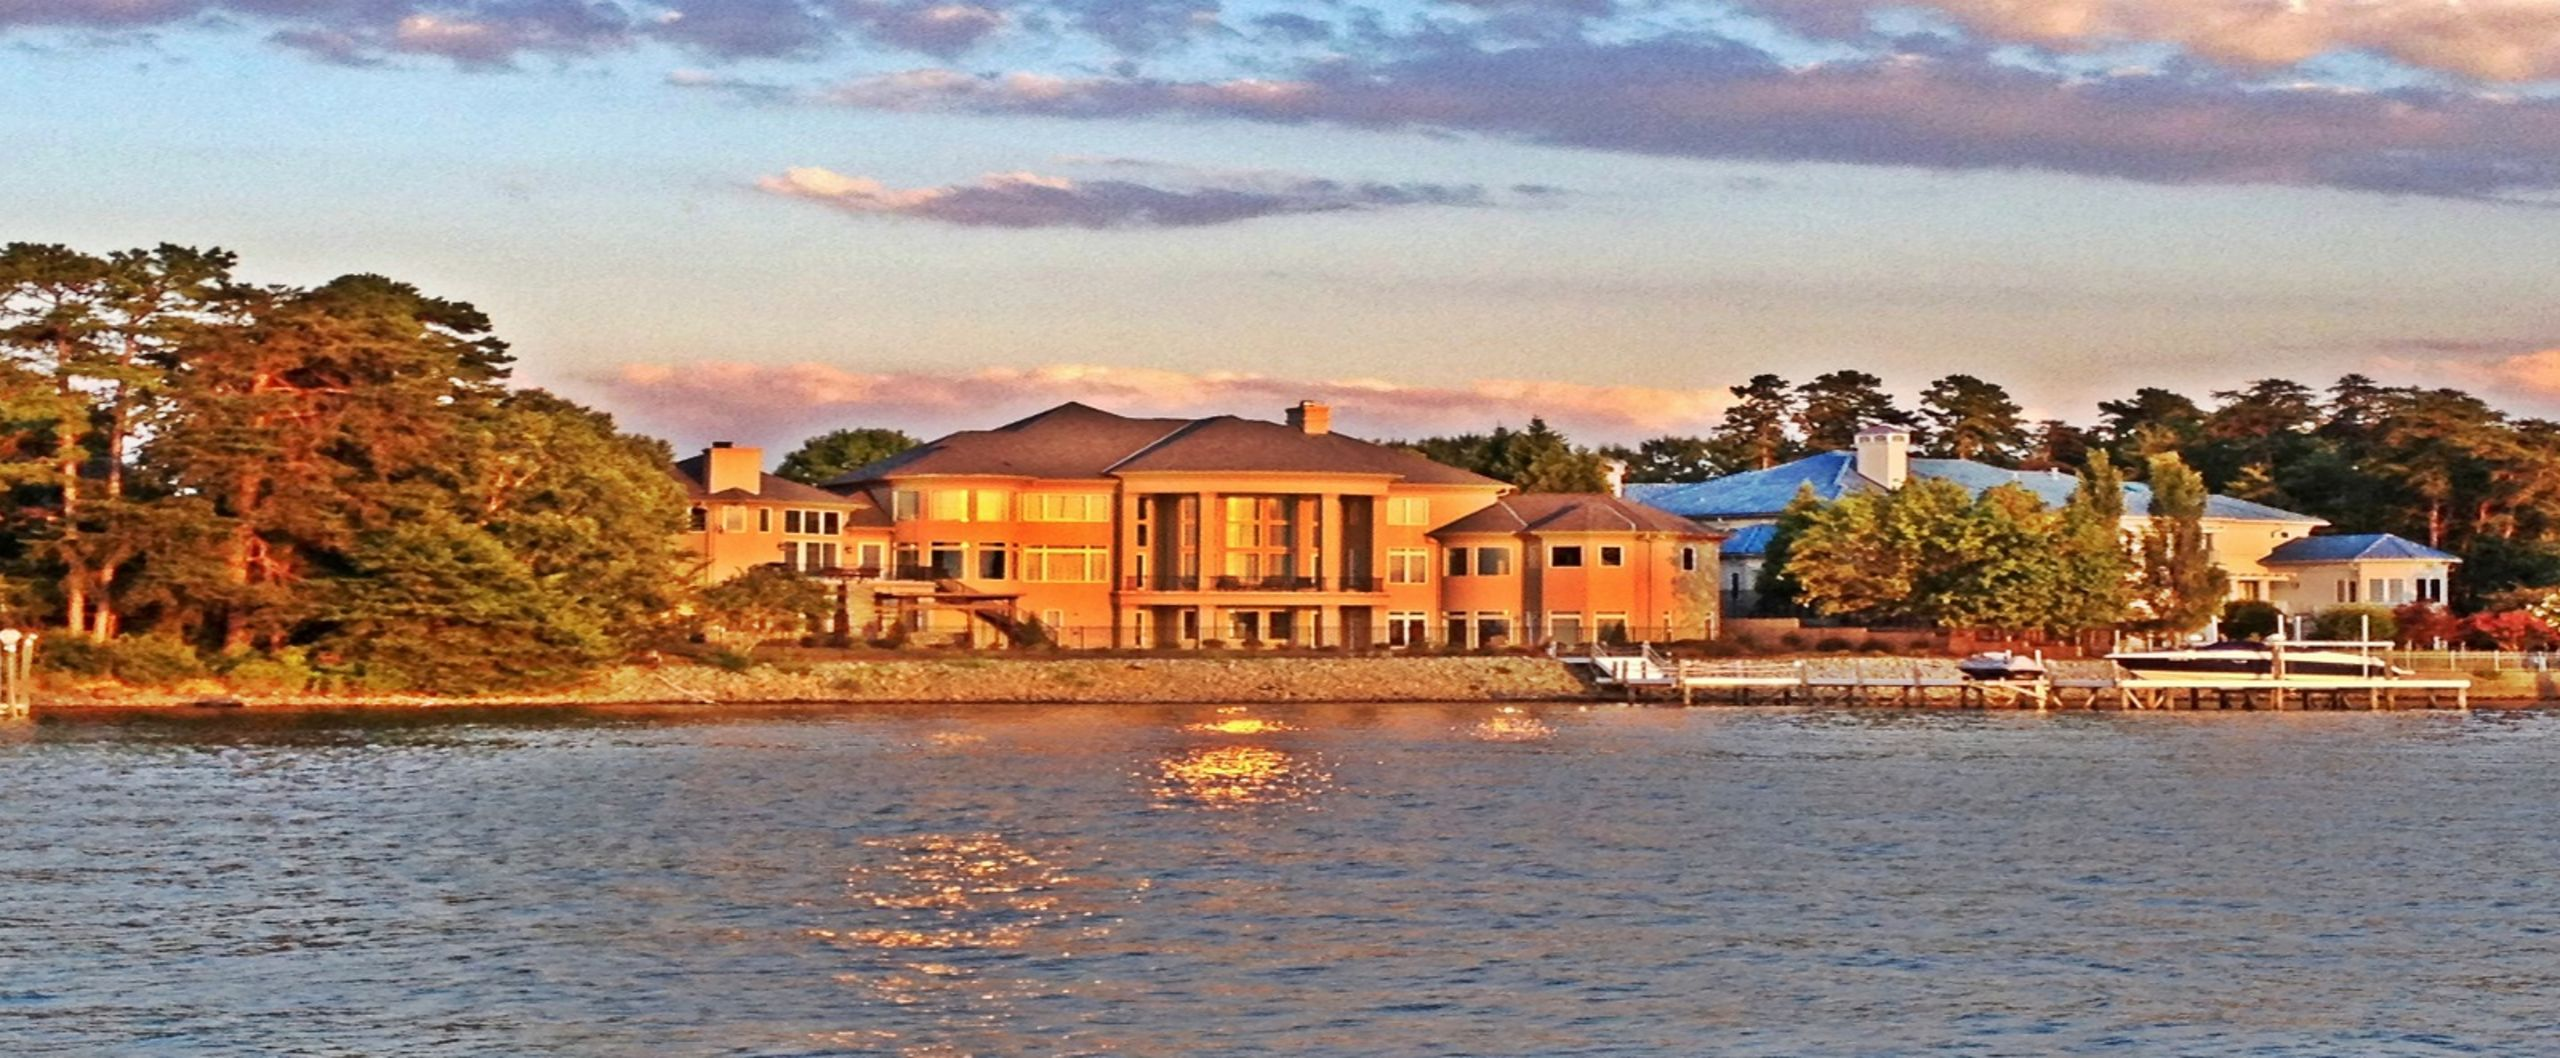 Let Us Show You All The Great Neighborhoods Around Lake Norman